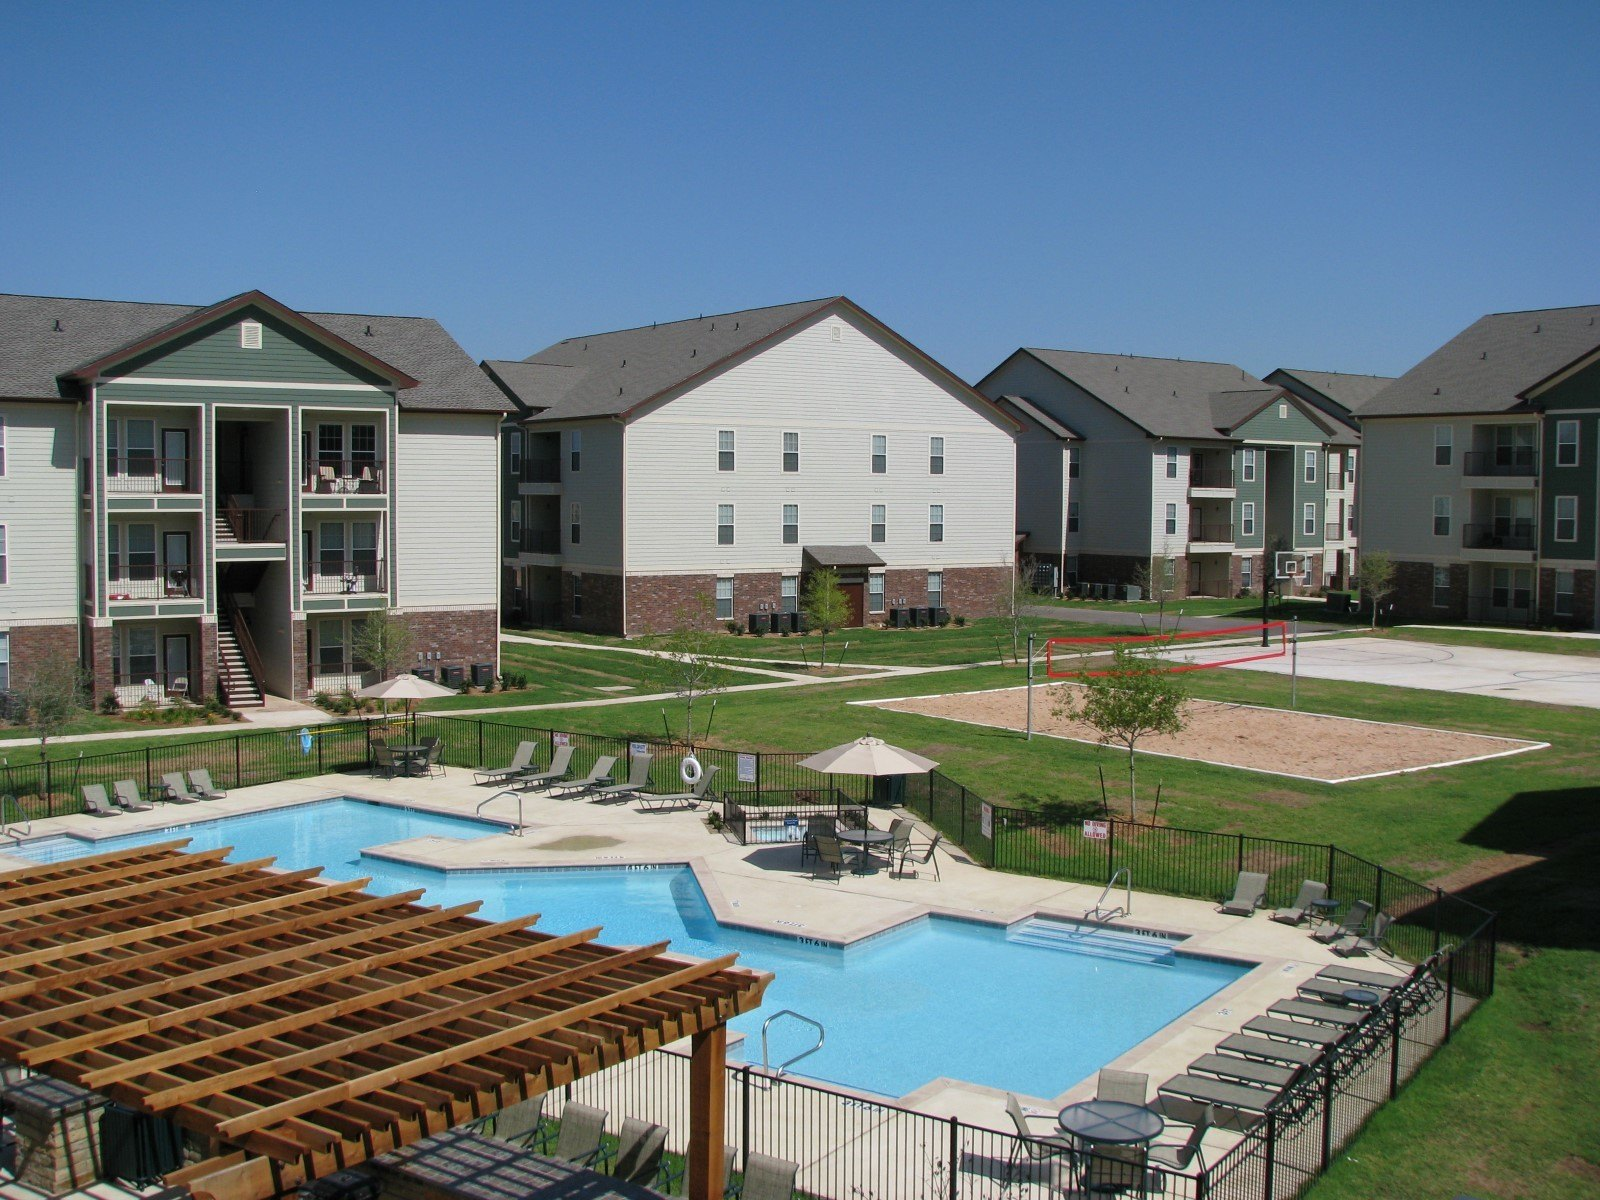 Apartments for rent in Lawton